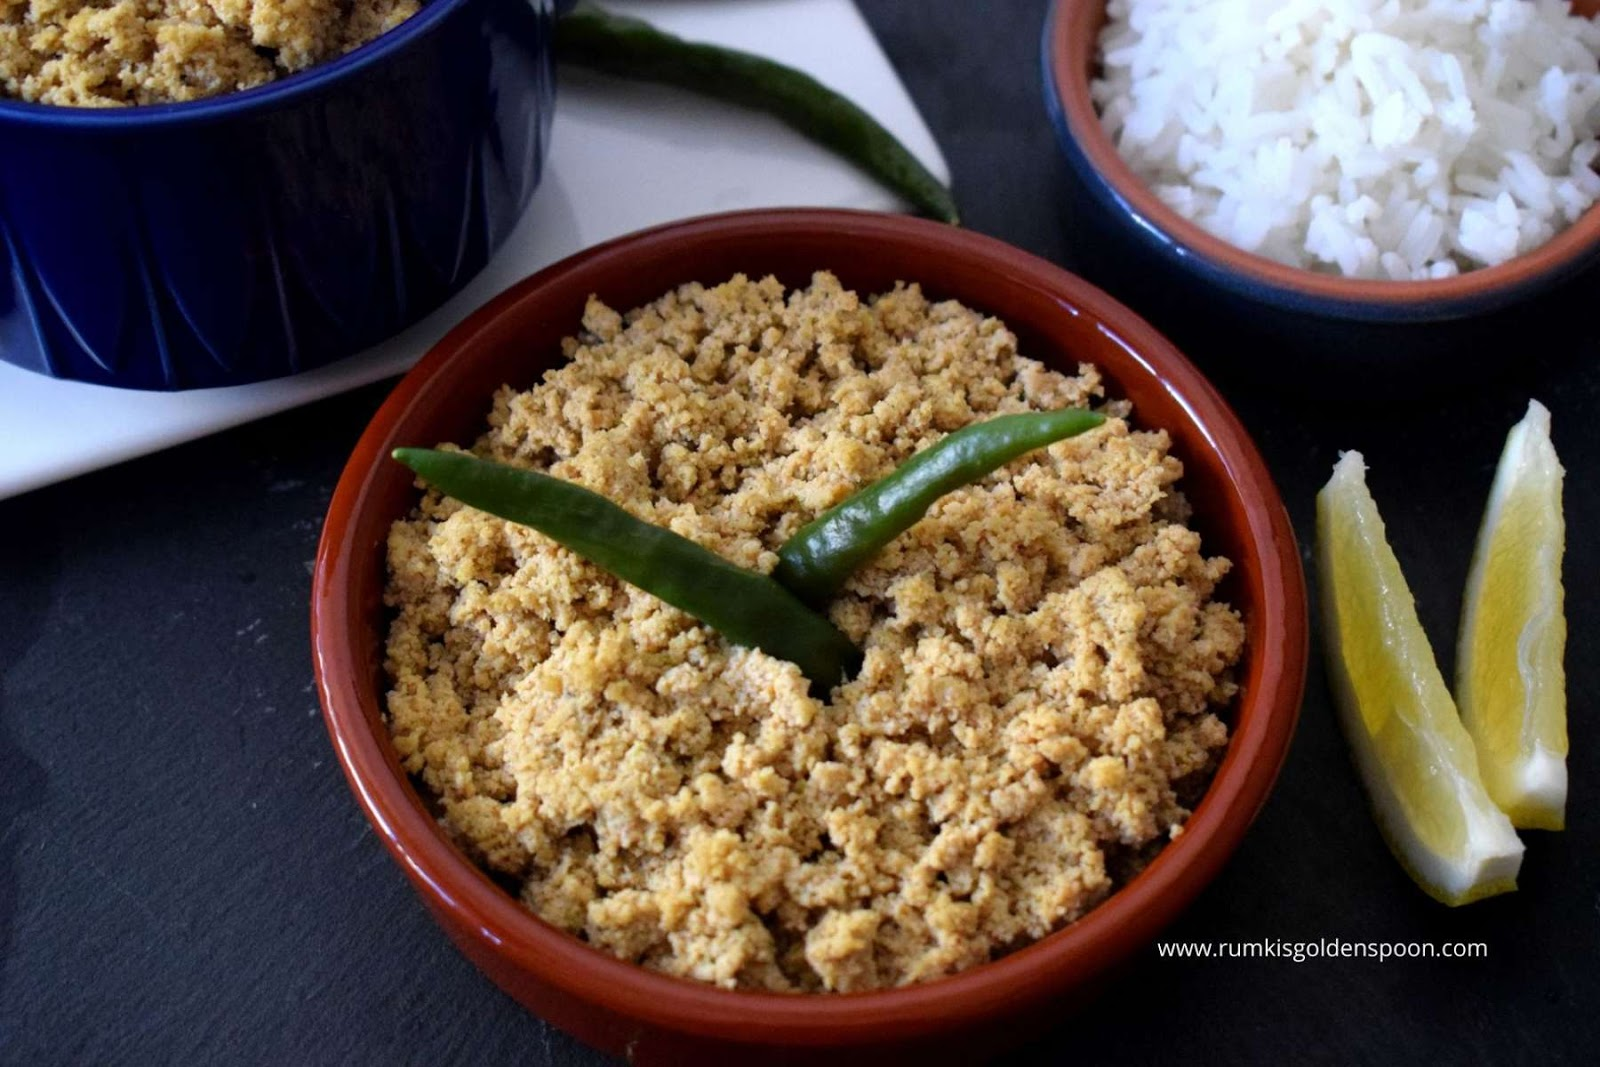 bengali traditional food, traditional food of Bengali, traditional bengali food, posto recipe, recipe with posto, poppy seeds recipe, Indian recipe, veg recipes of India, bengali veg recipe, bengali vegetable recipe, Rumki's Golden Spoon